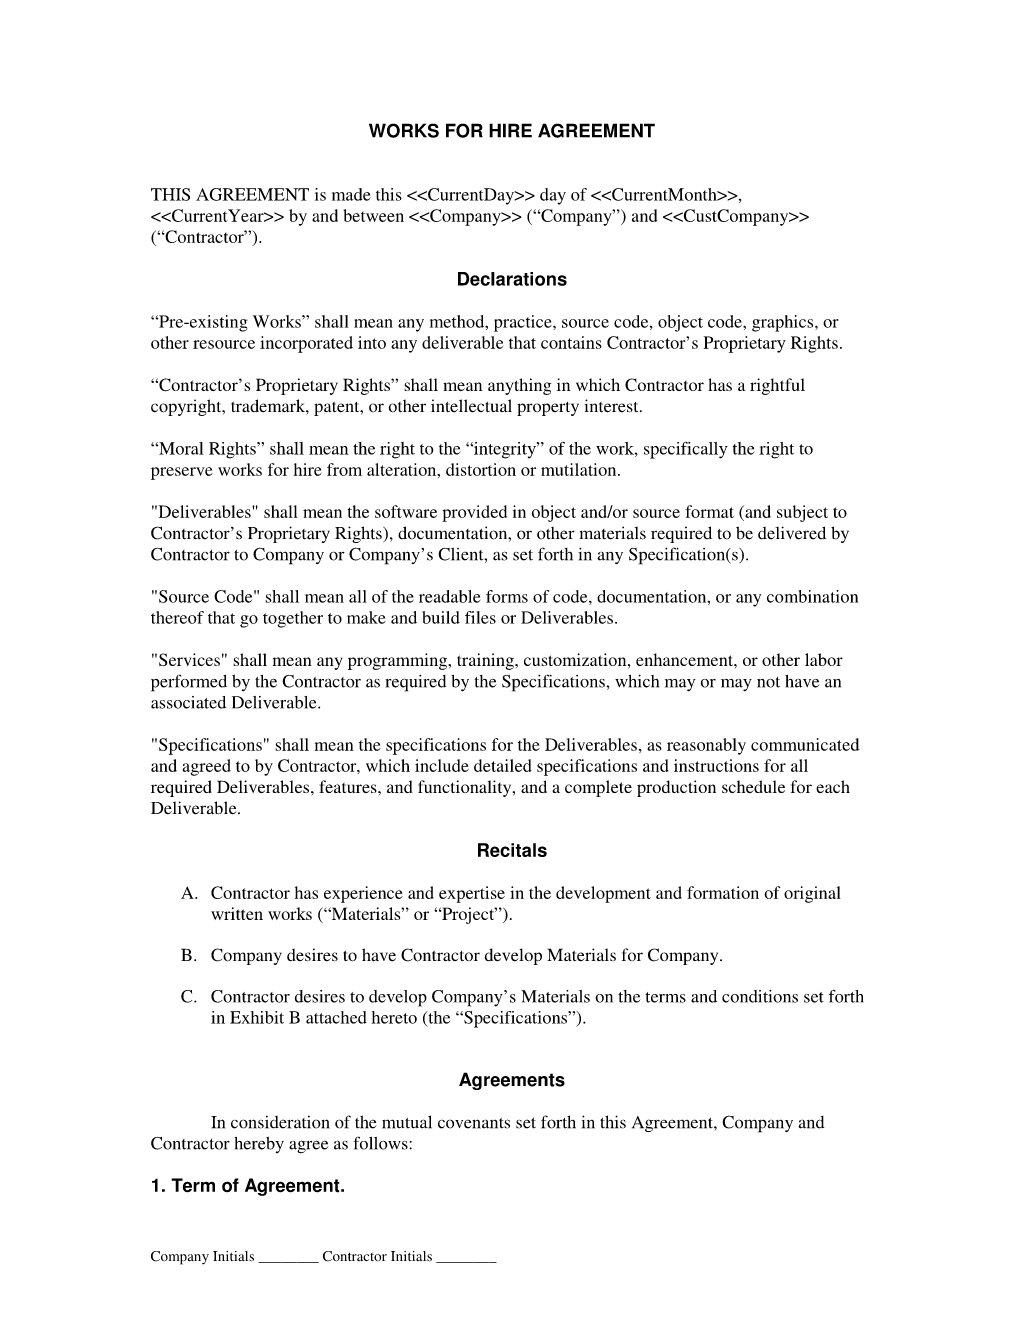 Legal Agreement Contract | Works For Hire Agreement General Service Product Contracts